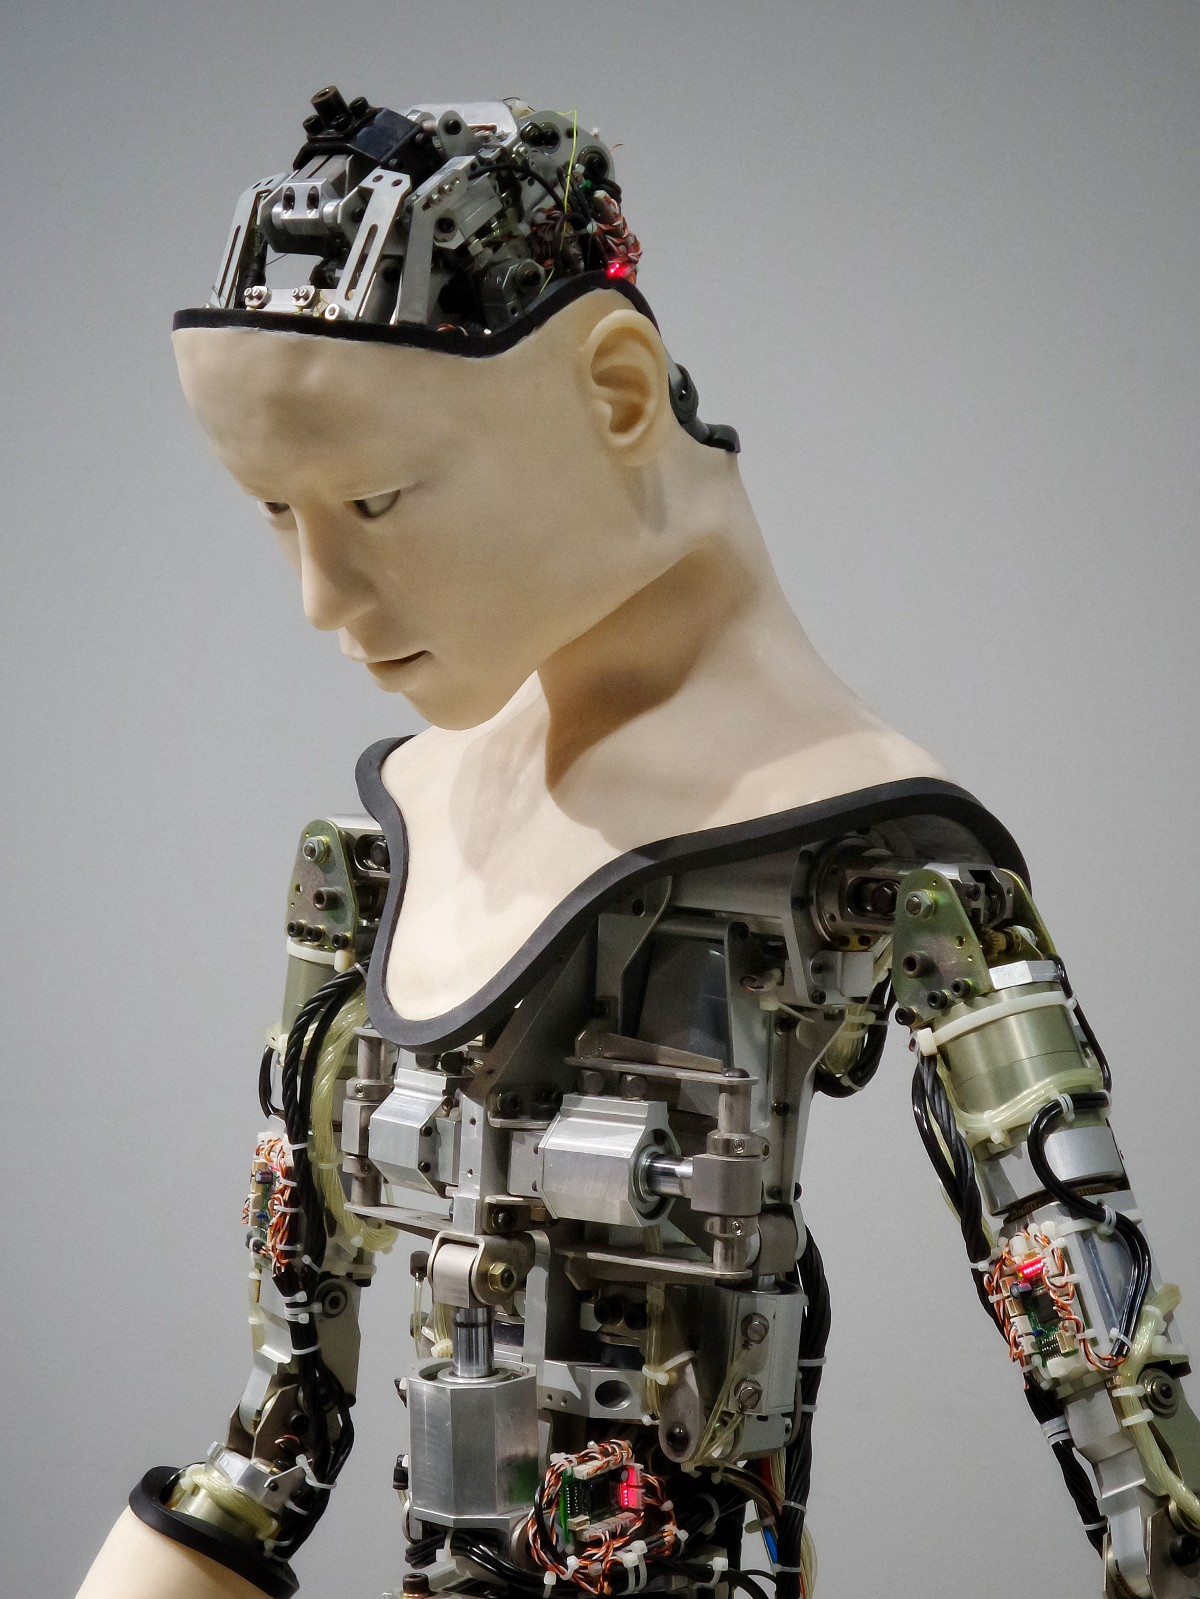 Latest Technology Trends Using Artificial Intelligence